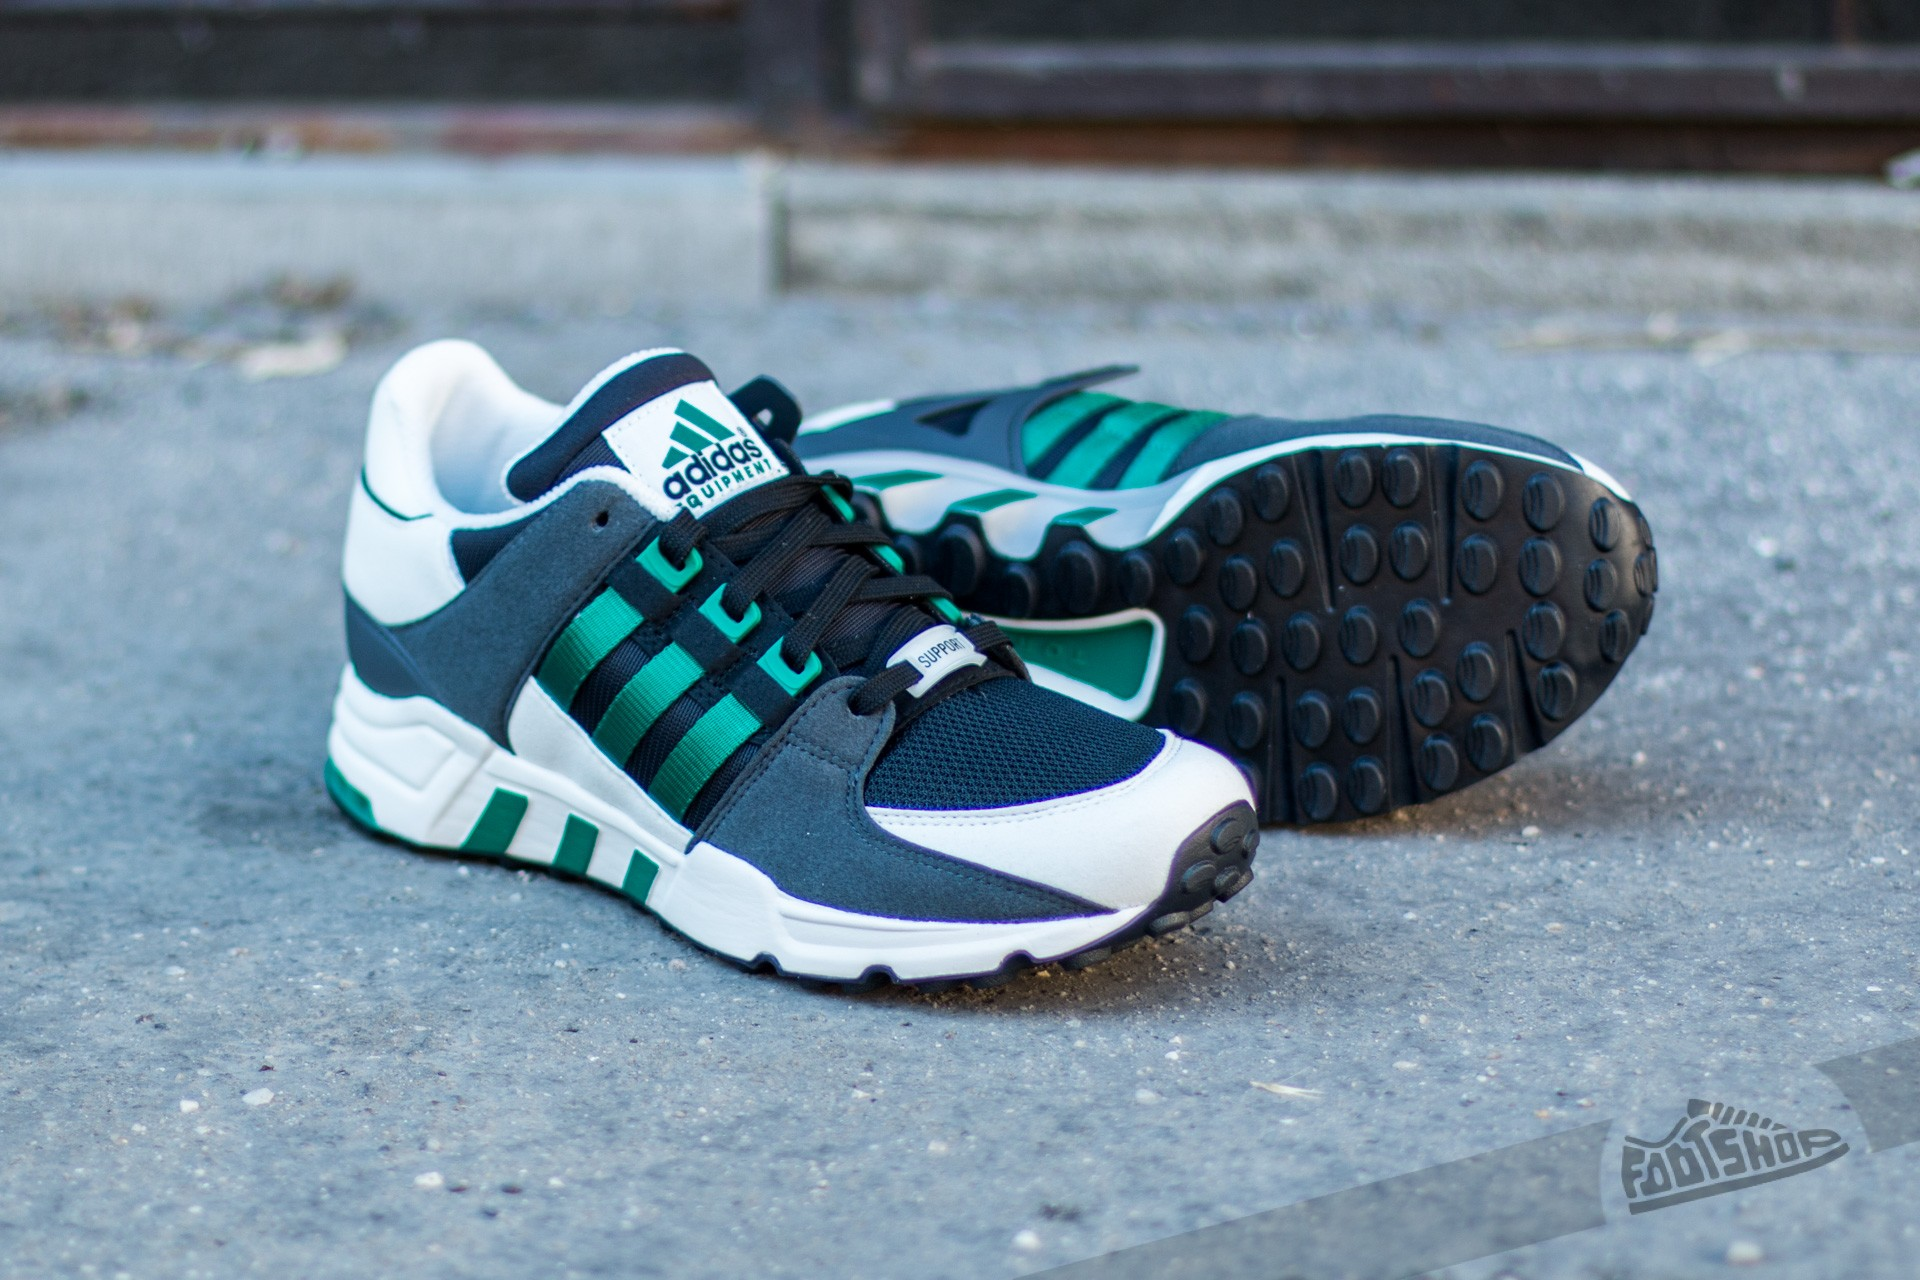 Adidas Sub White Support Running Equipment Black Vapour Core Green vNnmw80